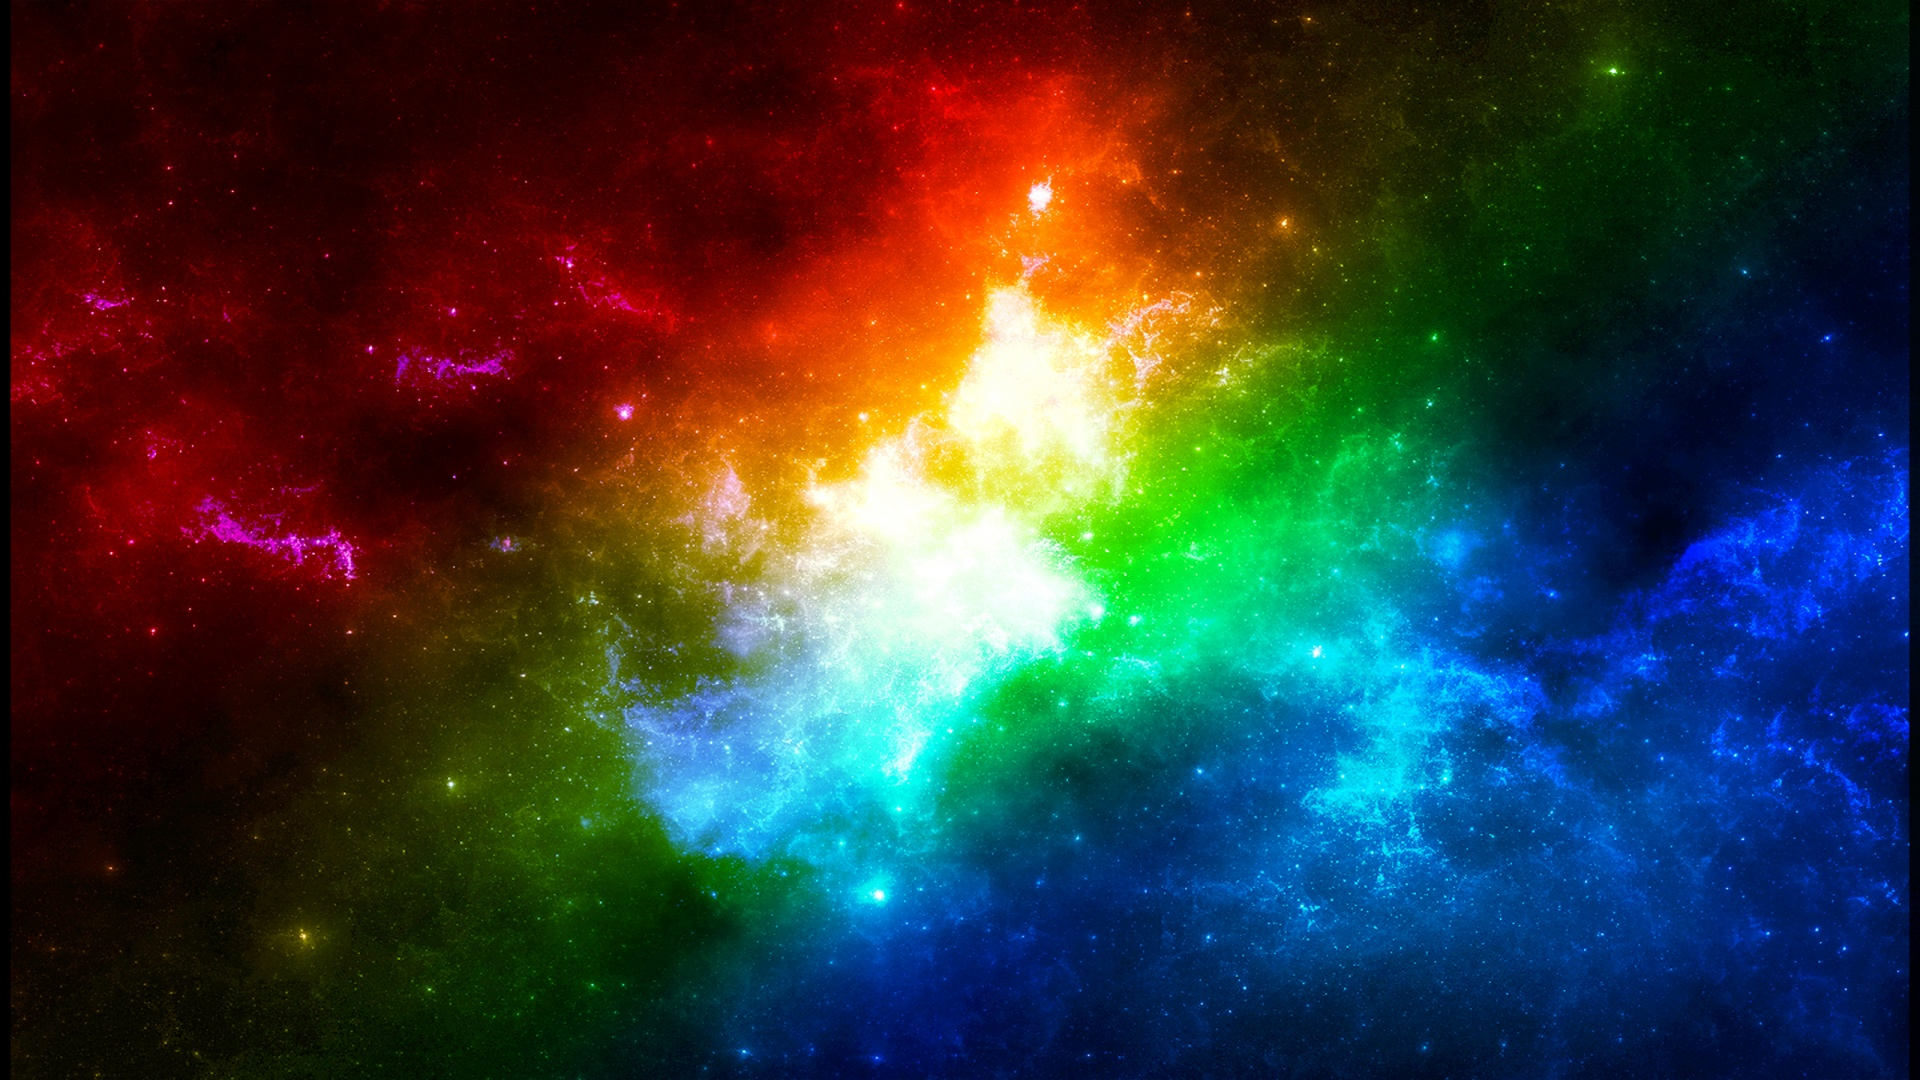 https://newevolutiondesigns.com/images/freebies/rainbow-wallpaper-18.jpg